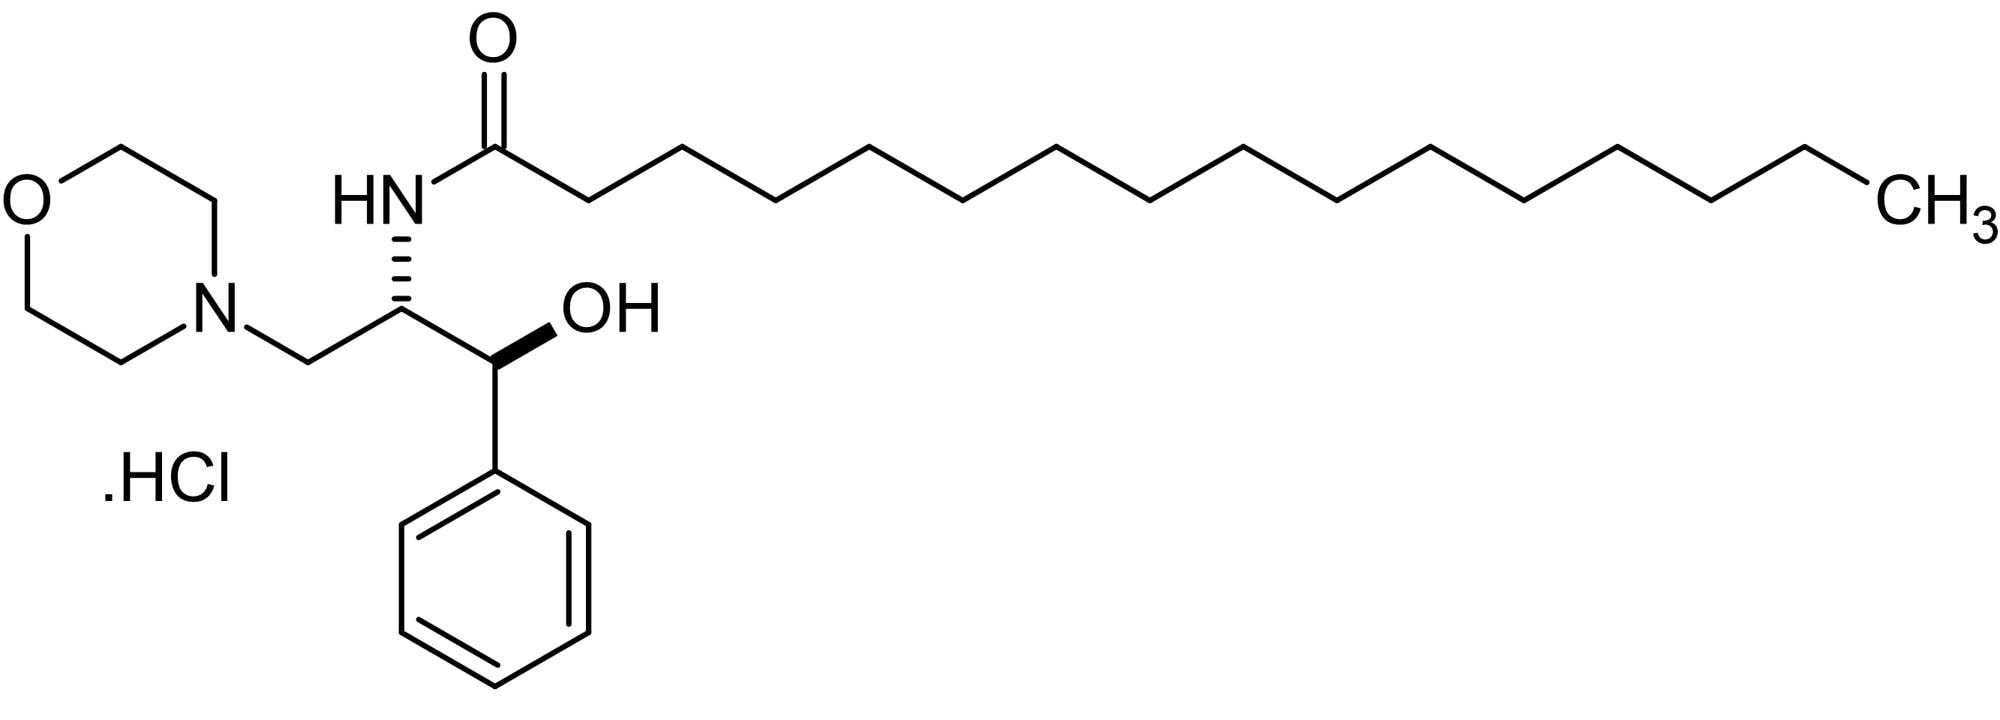 Chemical Structure - D,L-threo-PPMP, Glucosylceramide synthase inhibitor (ab144023)